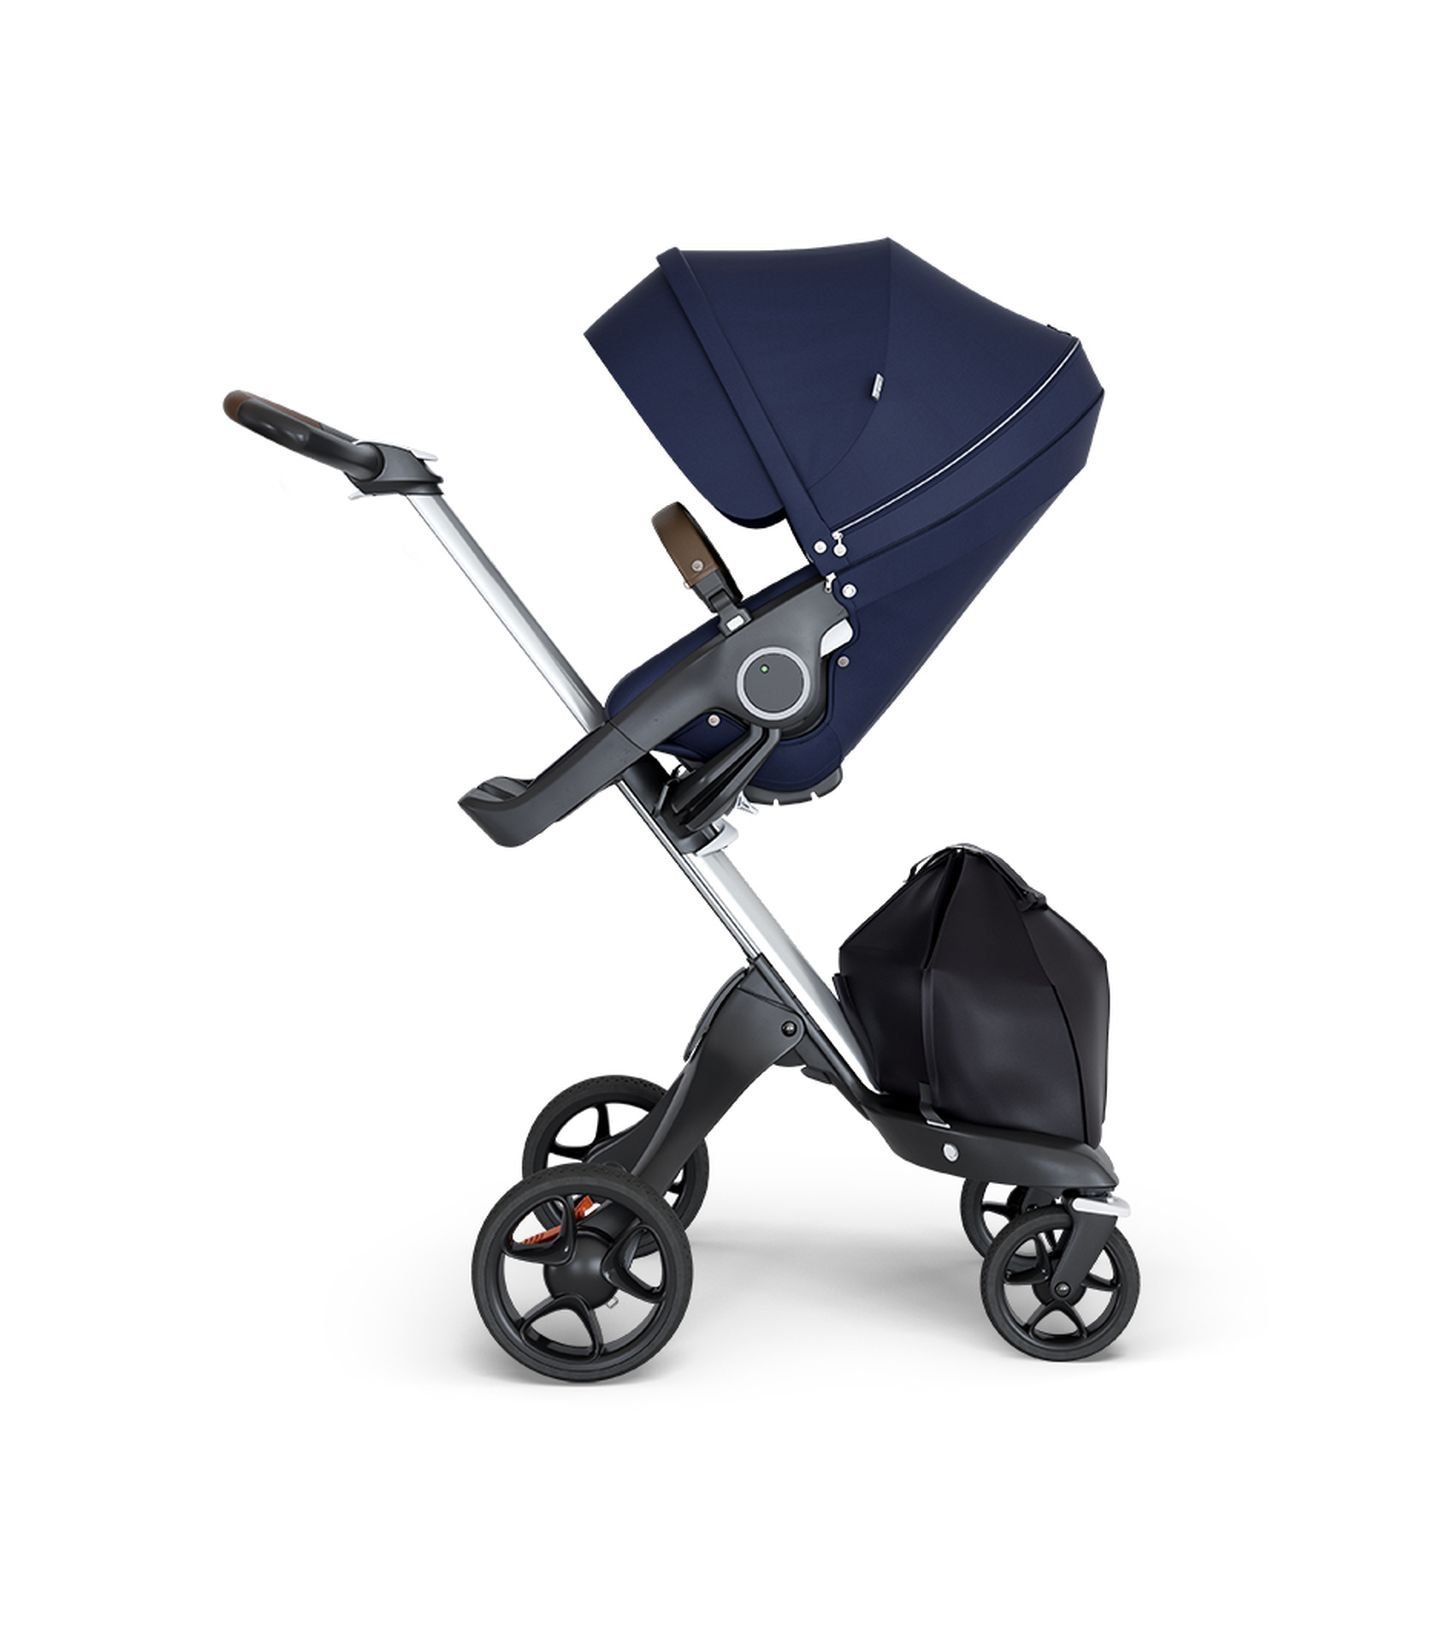 Stokke Xplory V6 Silver Chassis Stroller with Brown Leatherette Handle, Deep Blue by Stokke